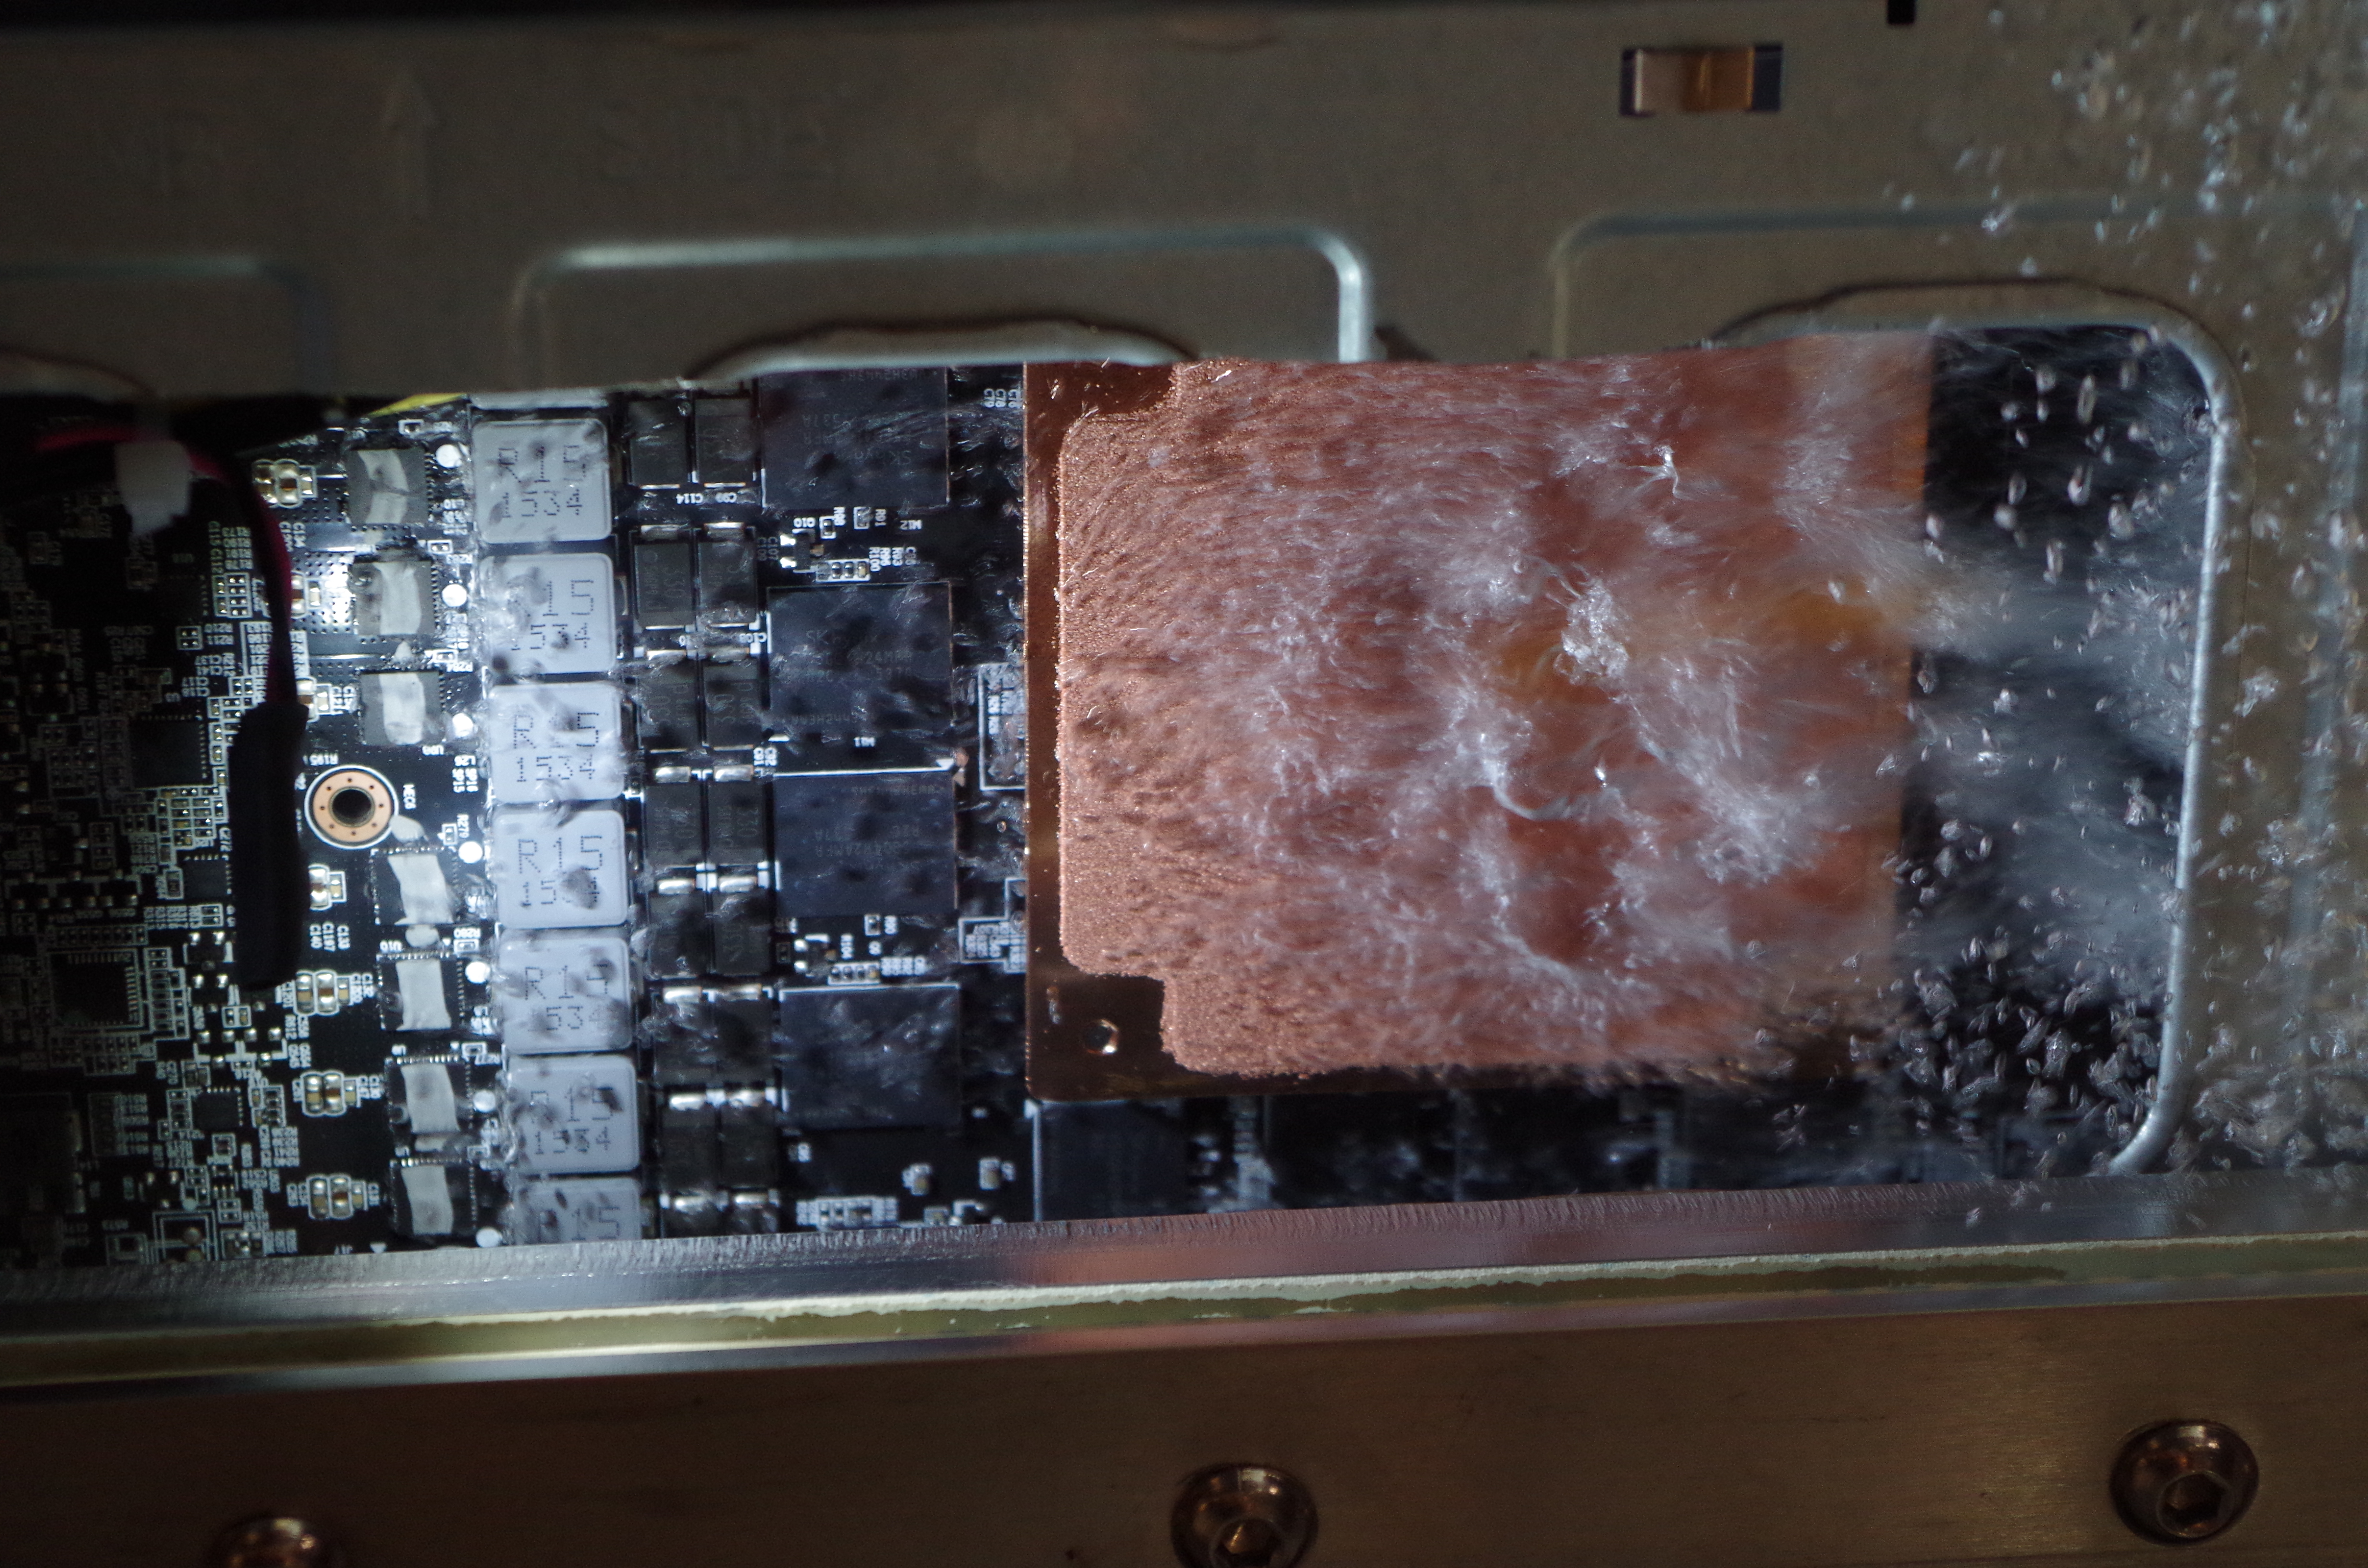 gigabyte server shows two phase immersion liquid cooling on a 2u gpu